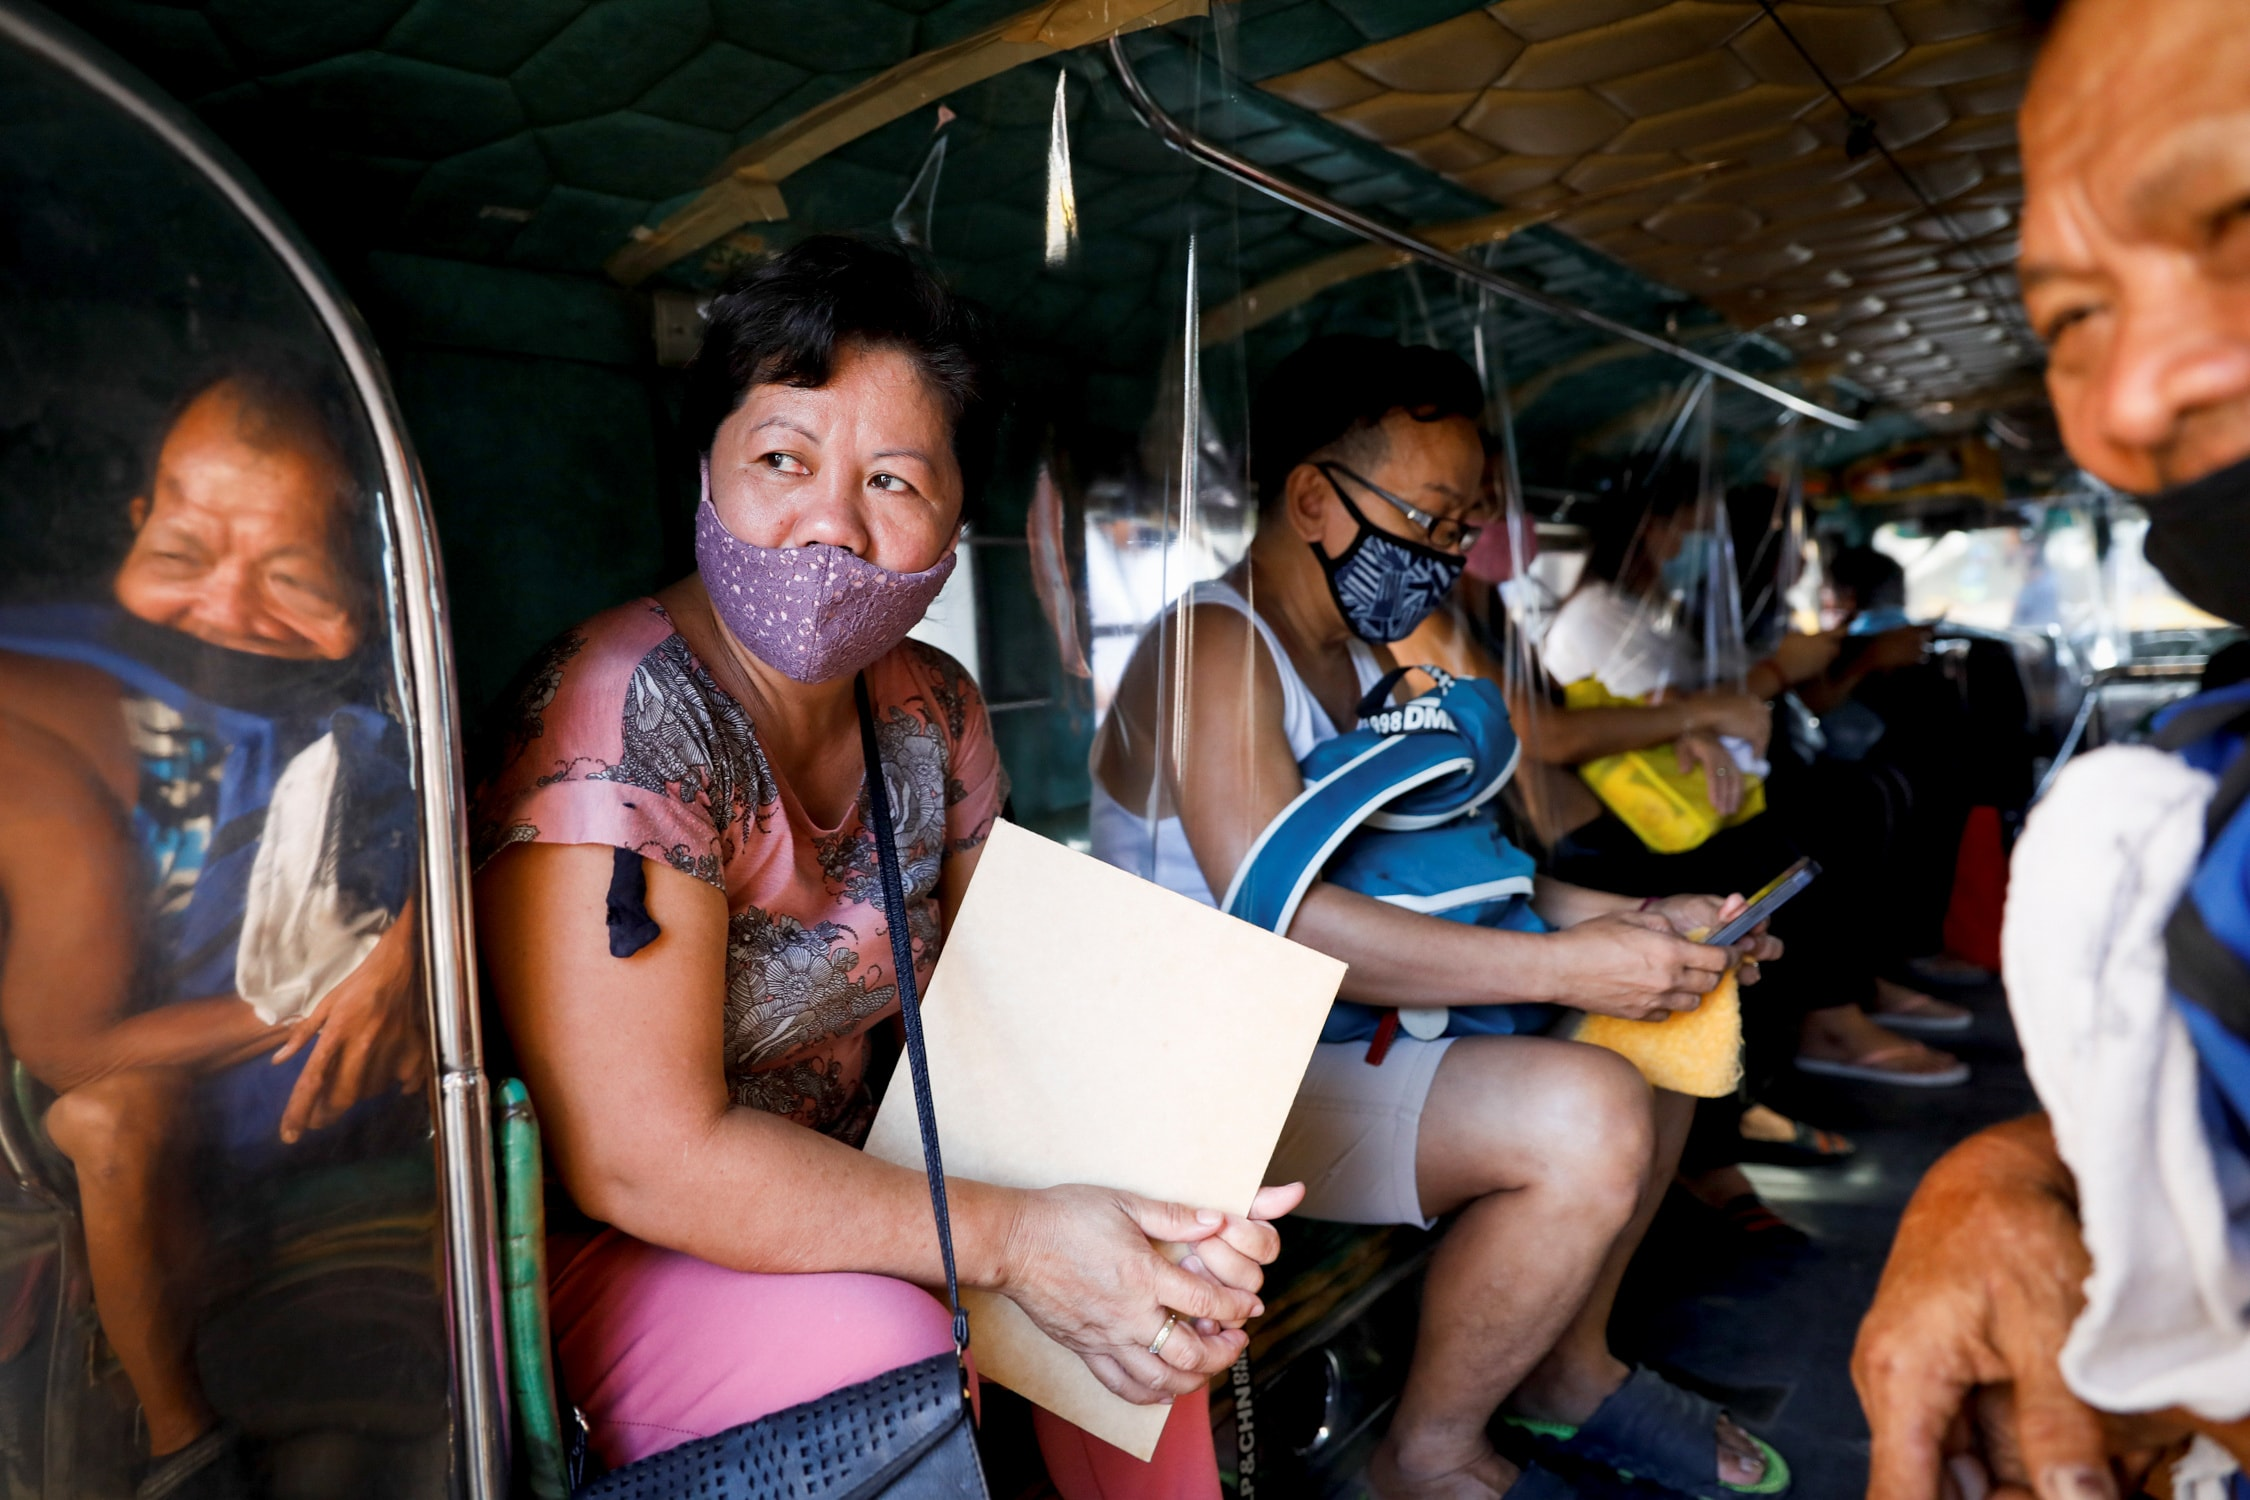 On a typical day in Manila, an estimated 55,000 of these large jeepneys used to crawl through gridlocked roads carrying up to 15 passengers who sat knee-to-knee on twin benches in the windowless vehicles. (REUTERS)